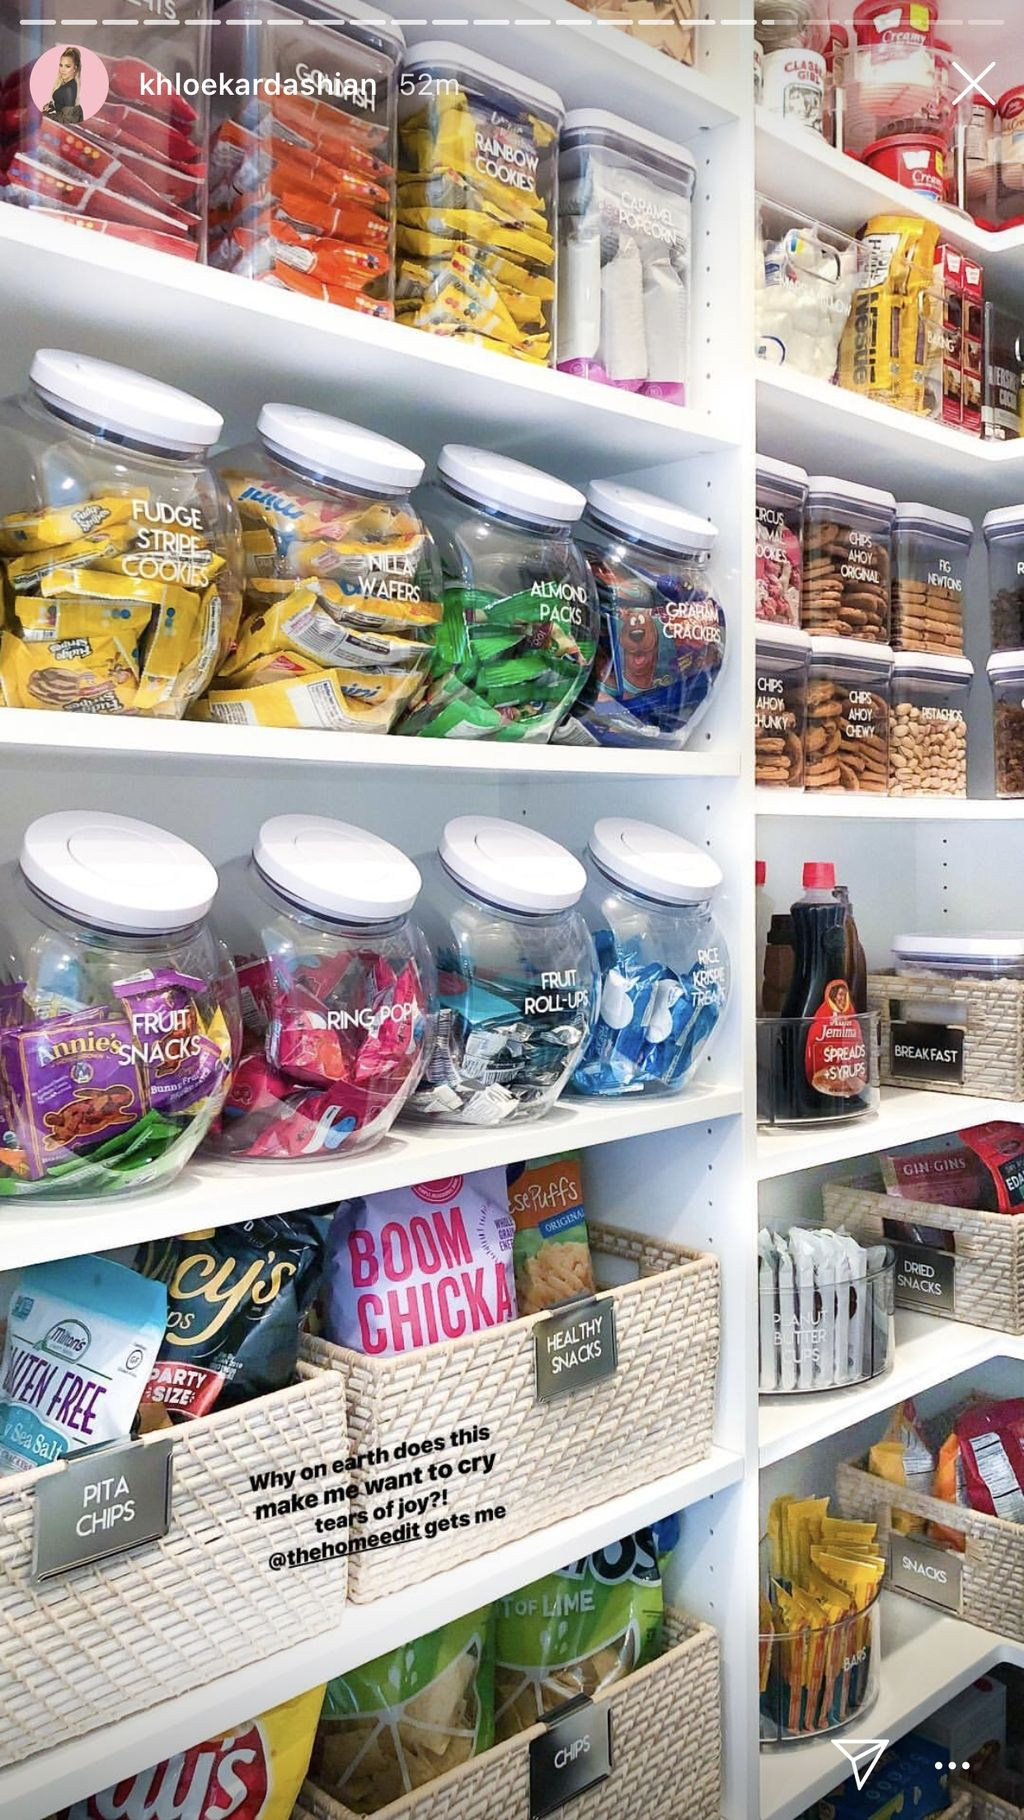 49 Nice Pantry Organization Ideas #pantryorganizationideas